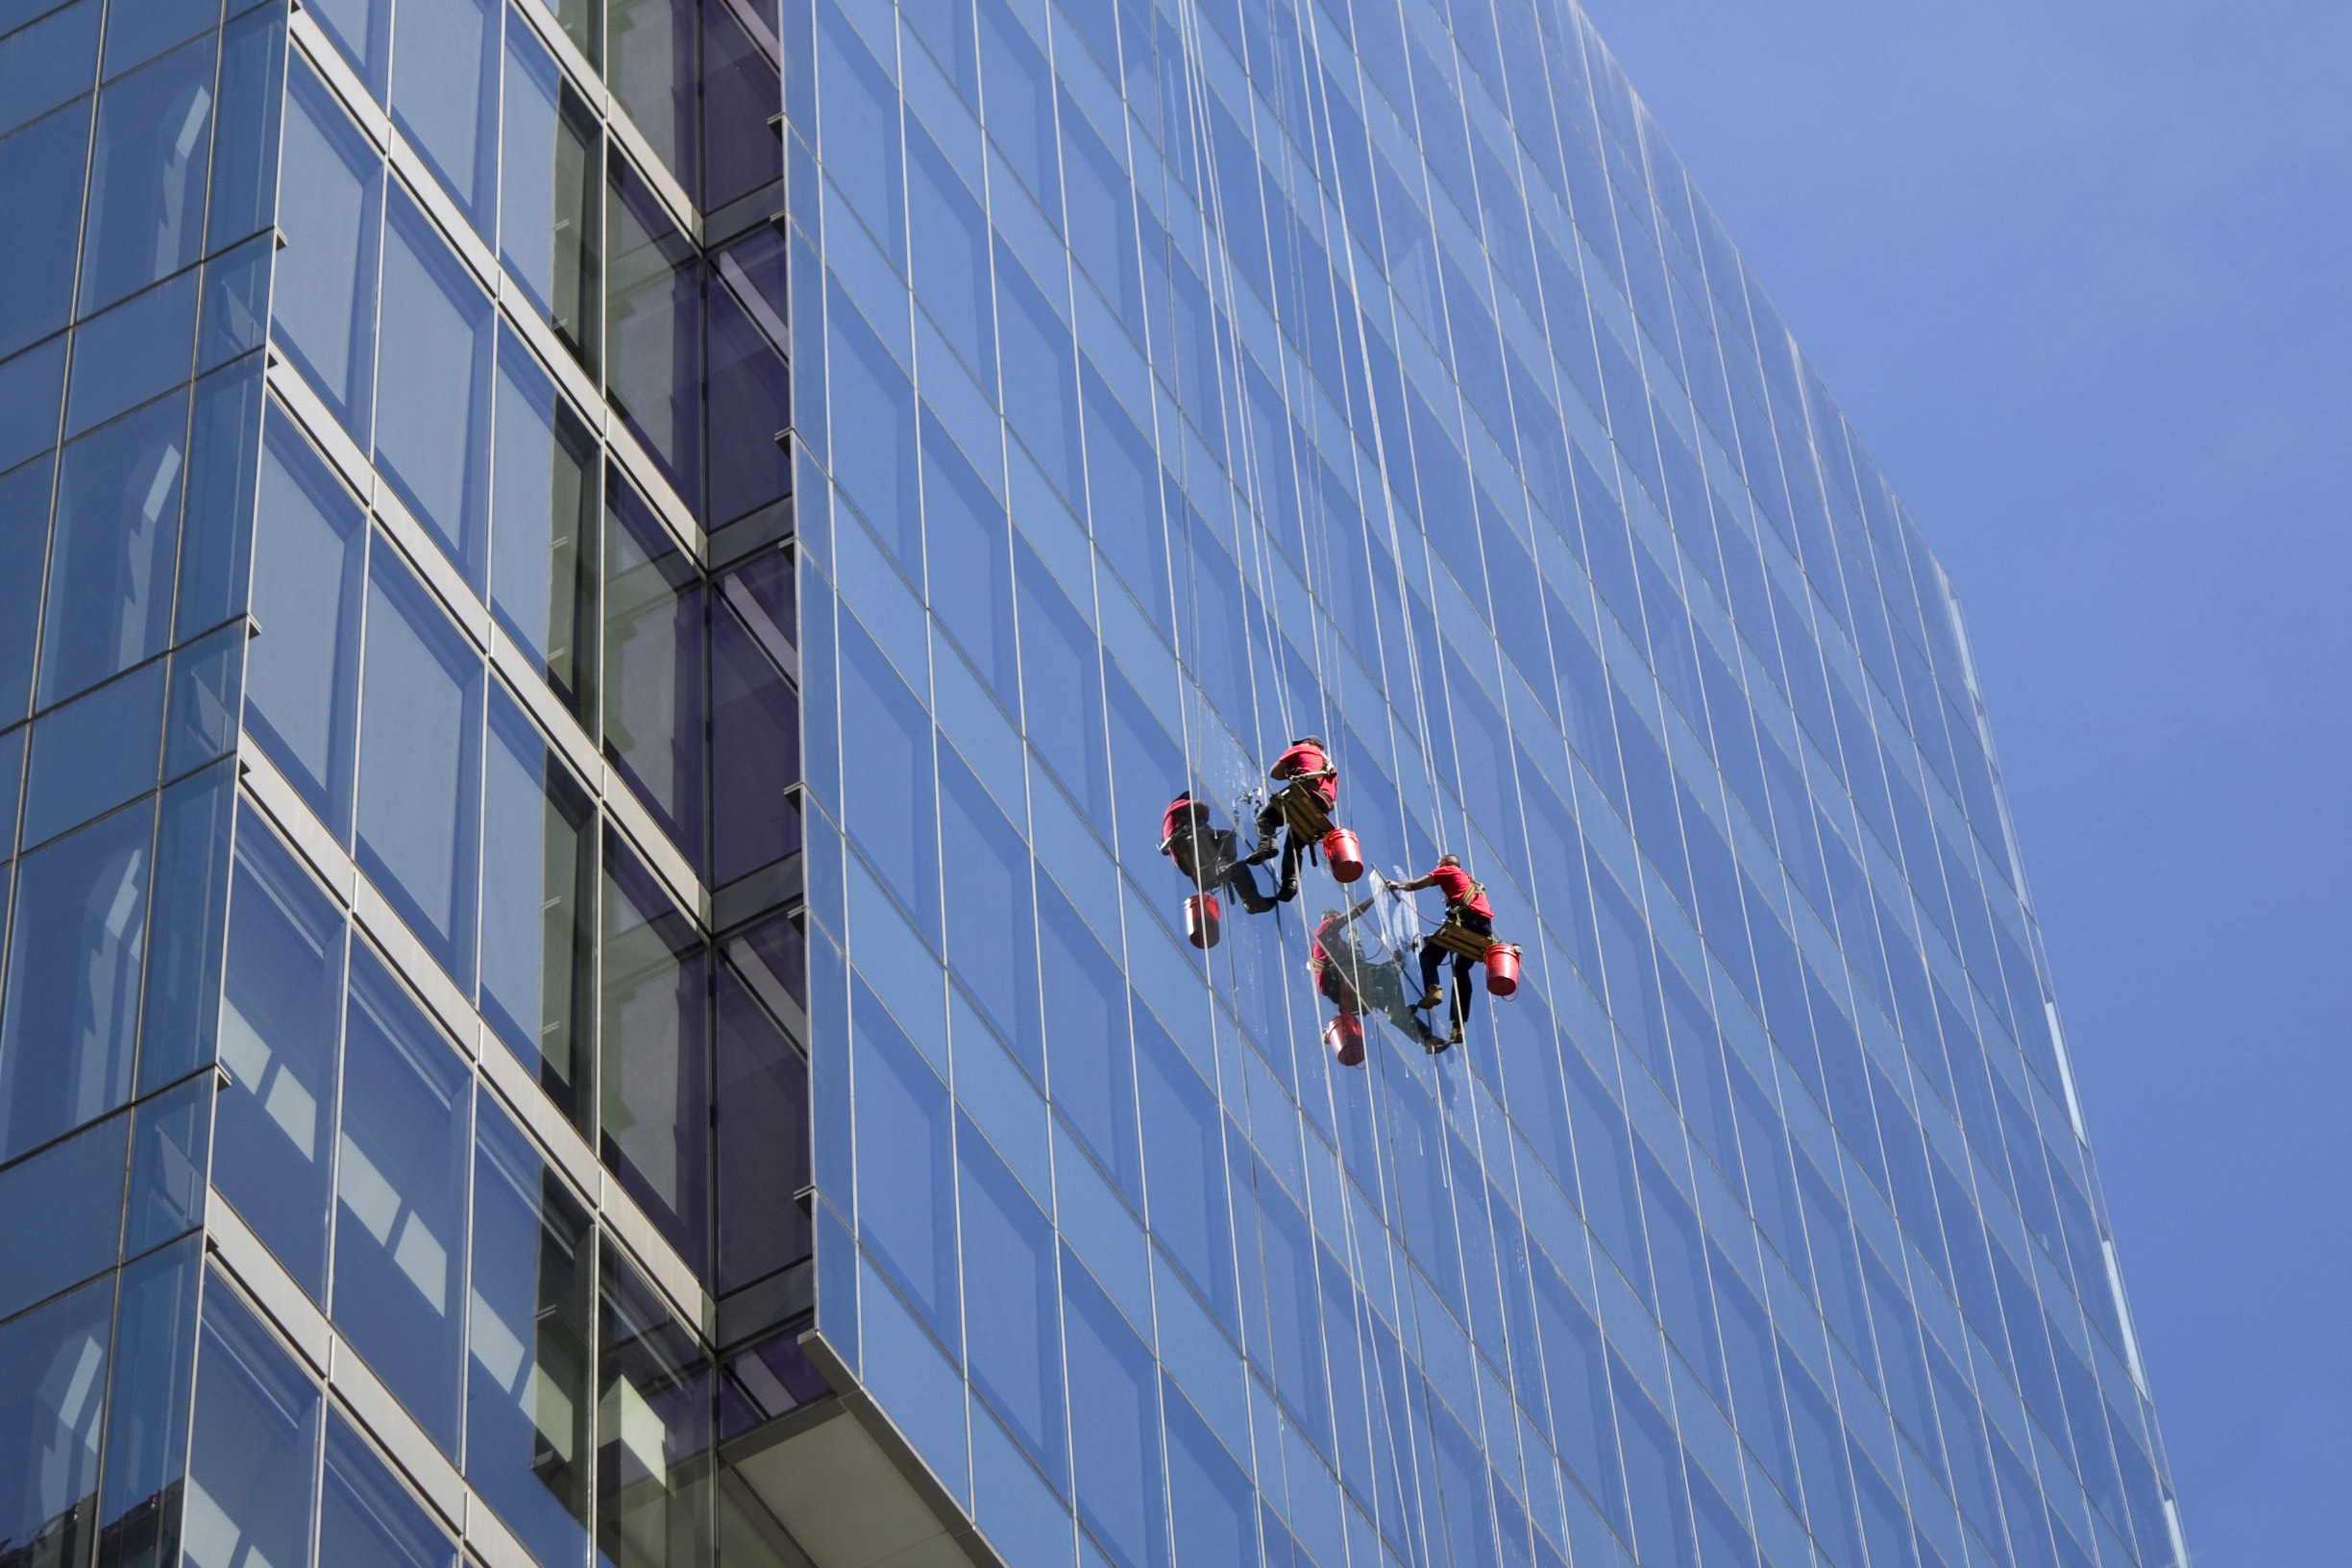 Learn What A Professional Has To Say About The Rope Access